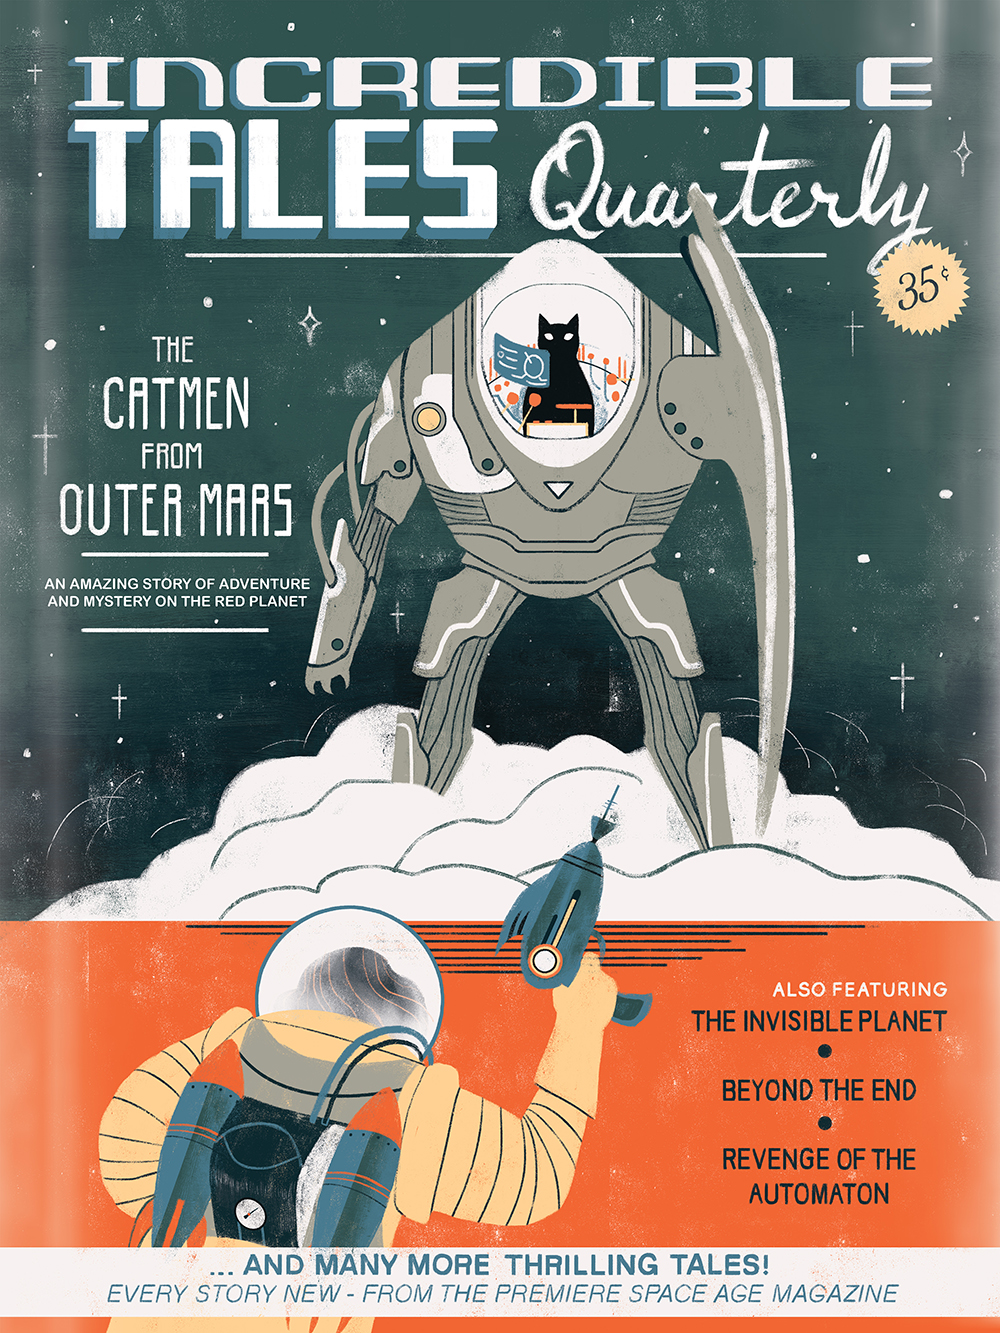 """""""Incredible Tales Quarterly"""" by Sander B."""